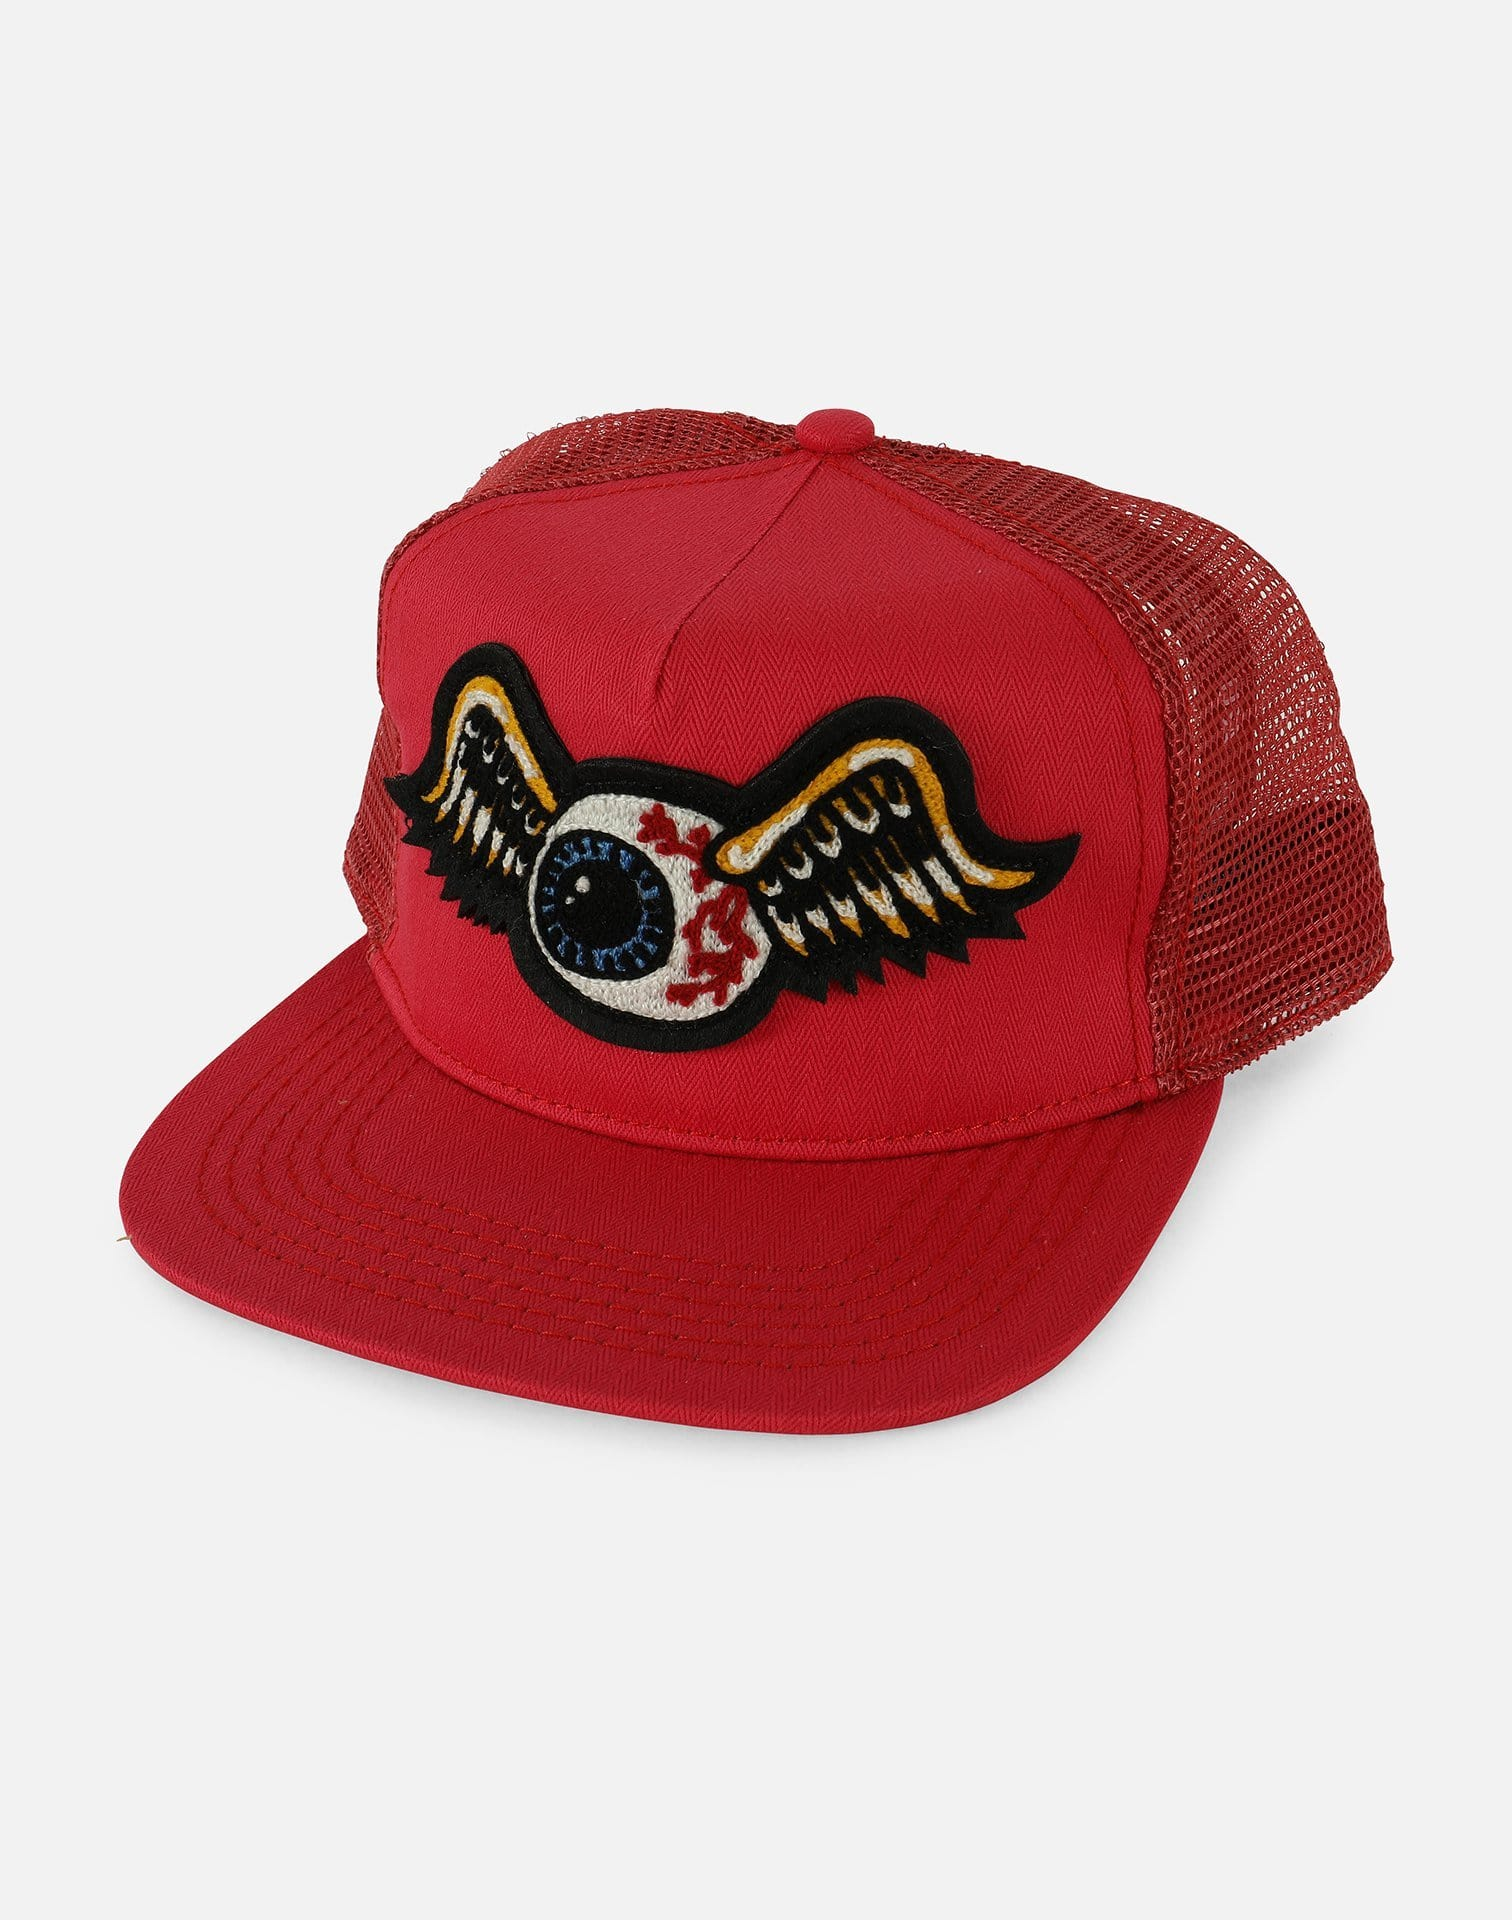 Von Dutch Flying Eyeball Trucker Snapback Hat